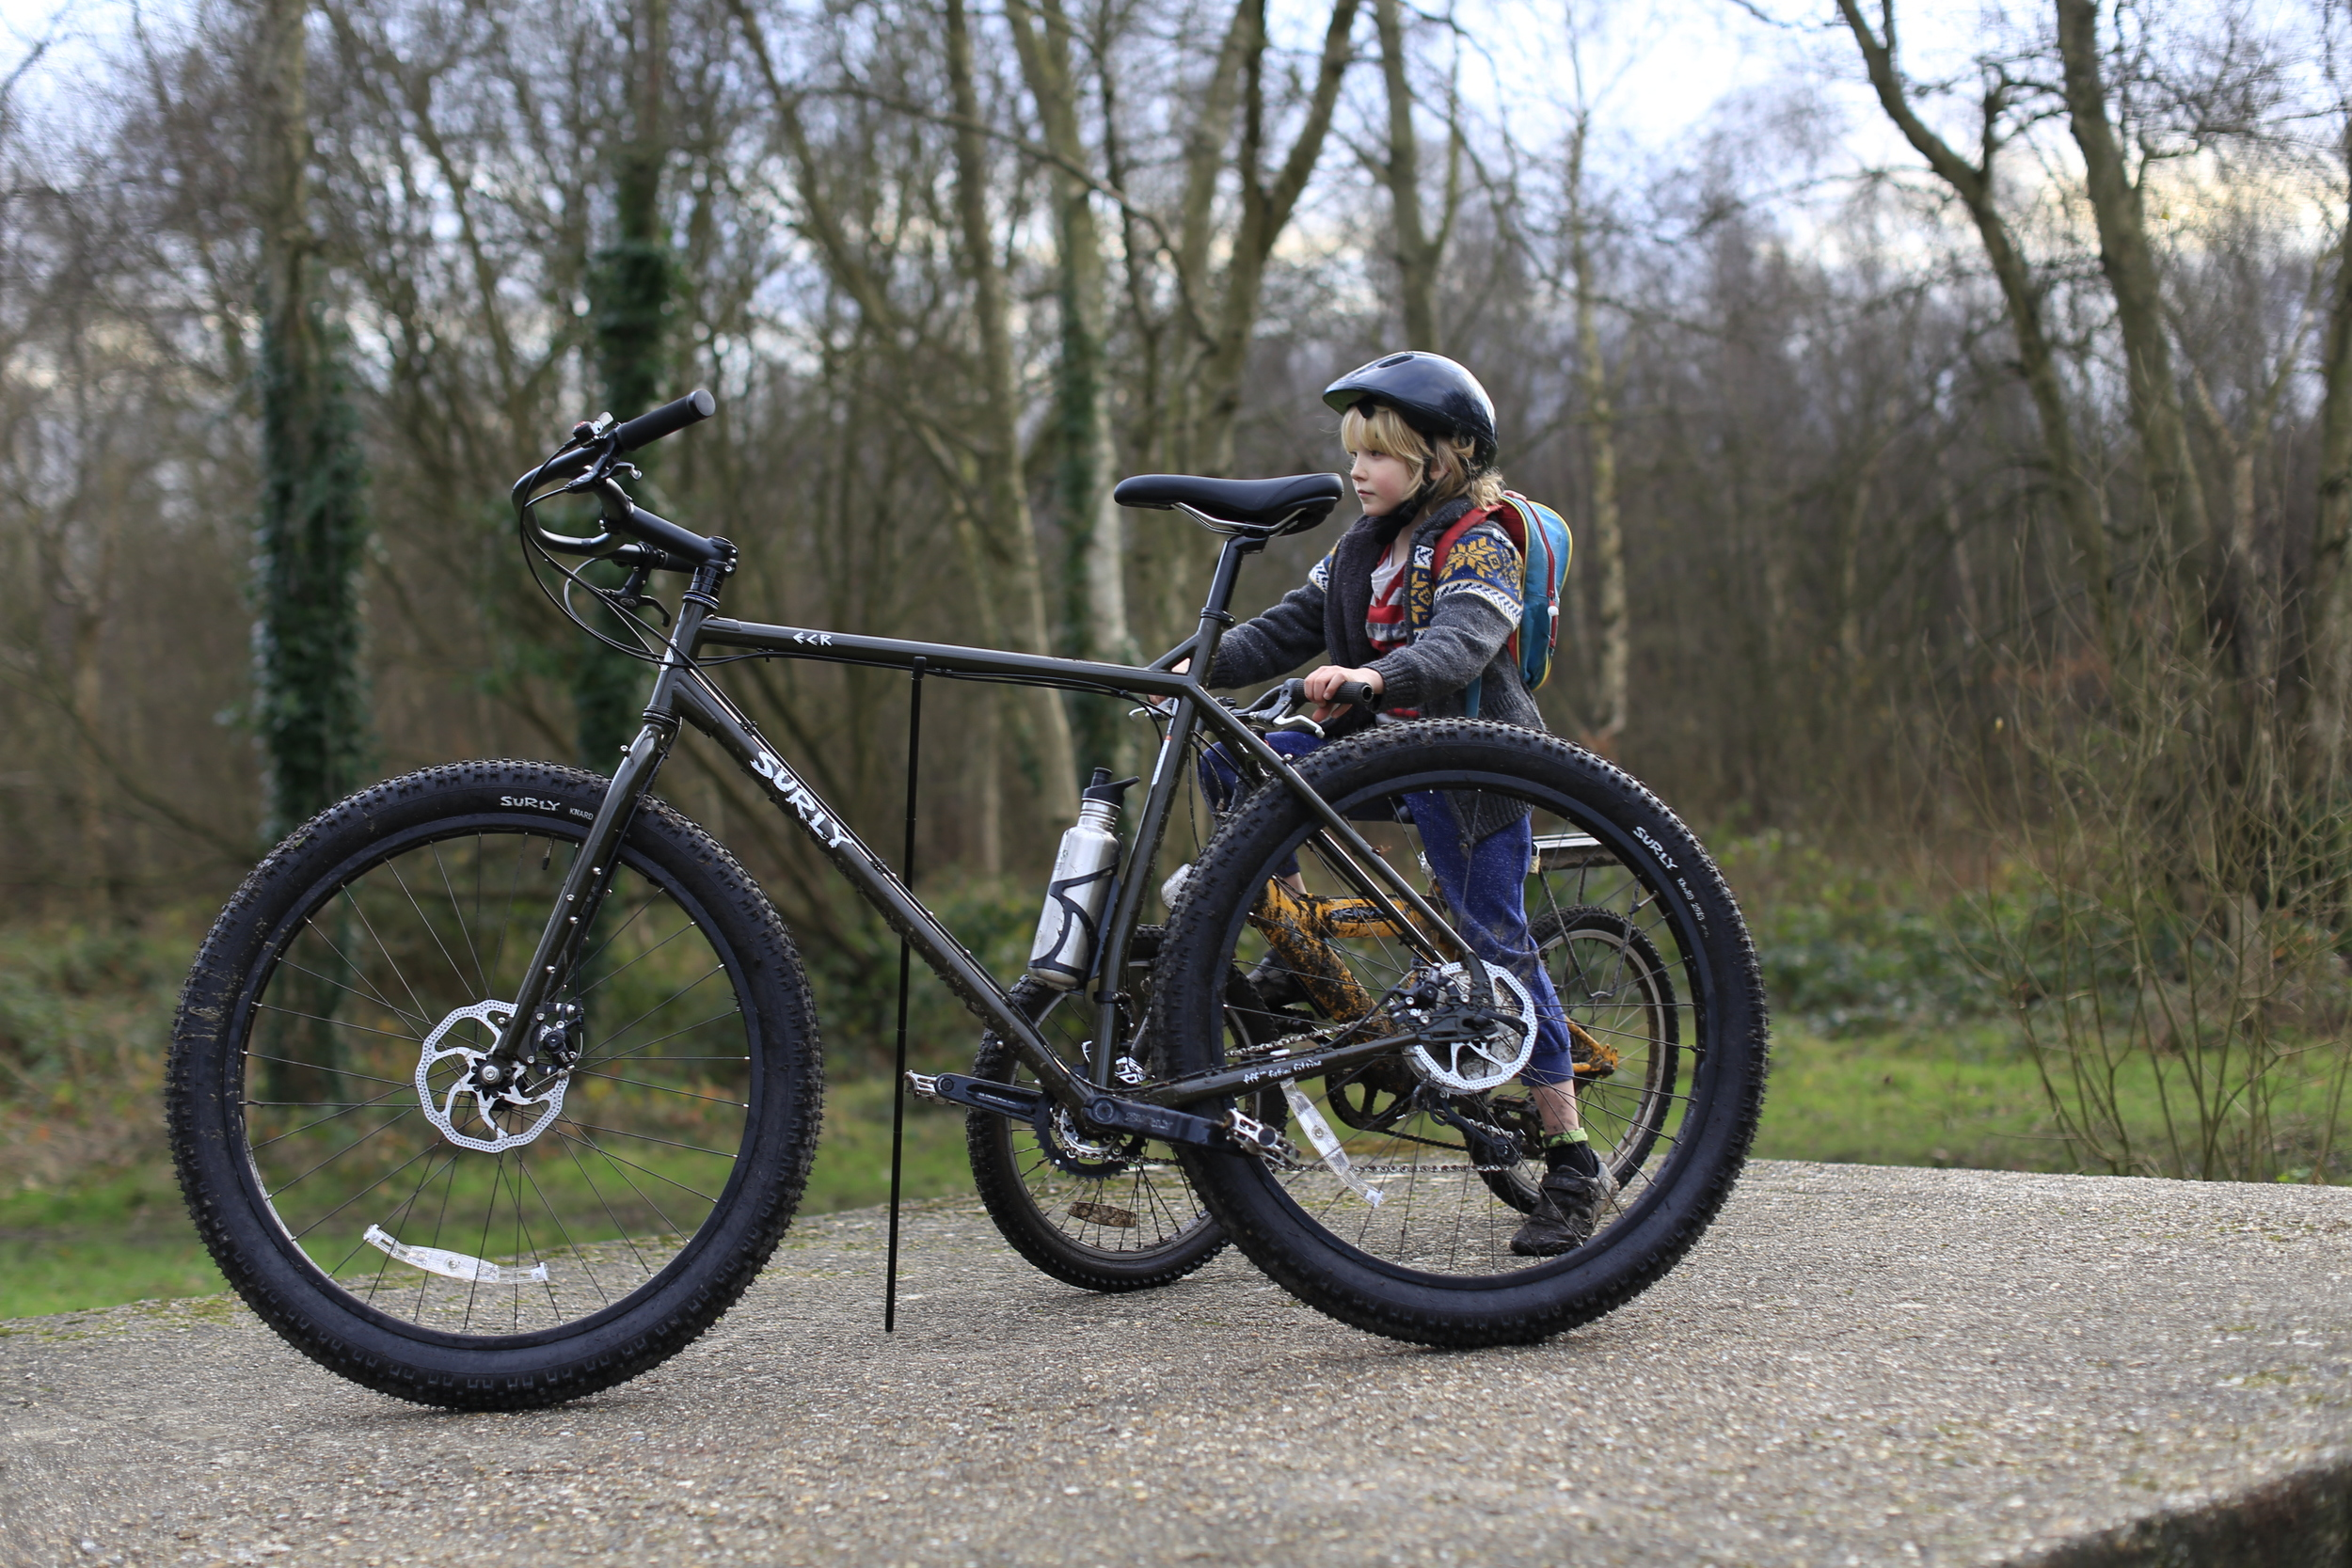 woods, singletrack, surly, surly ecr, mtb, canon, canon 6d, review